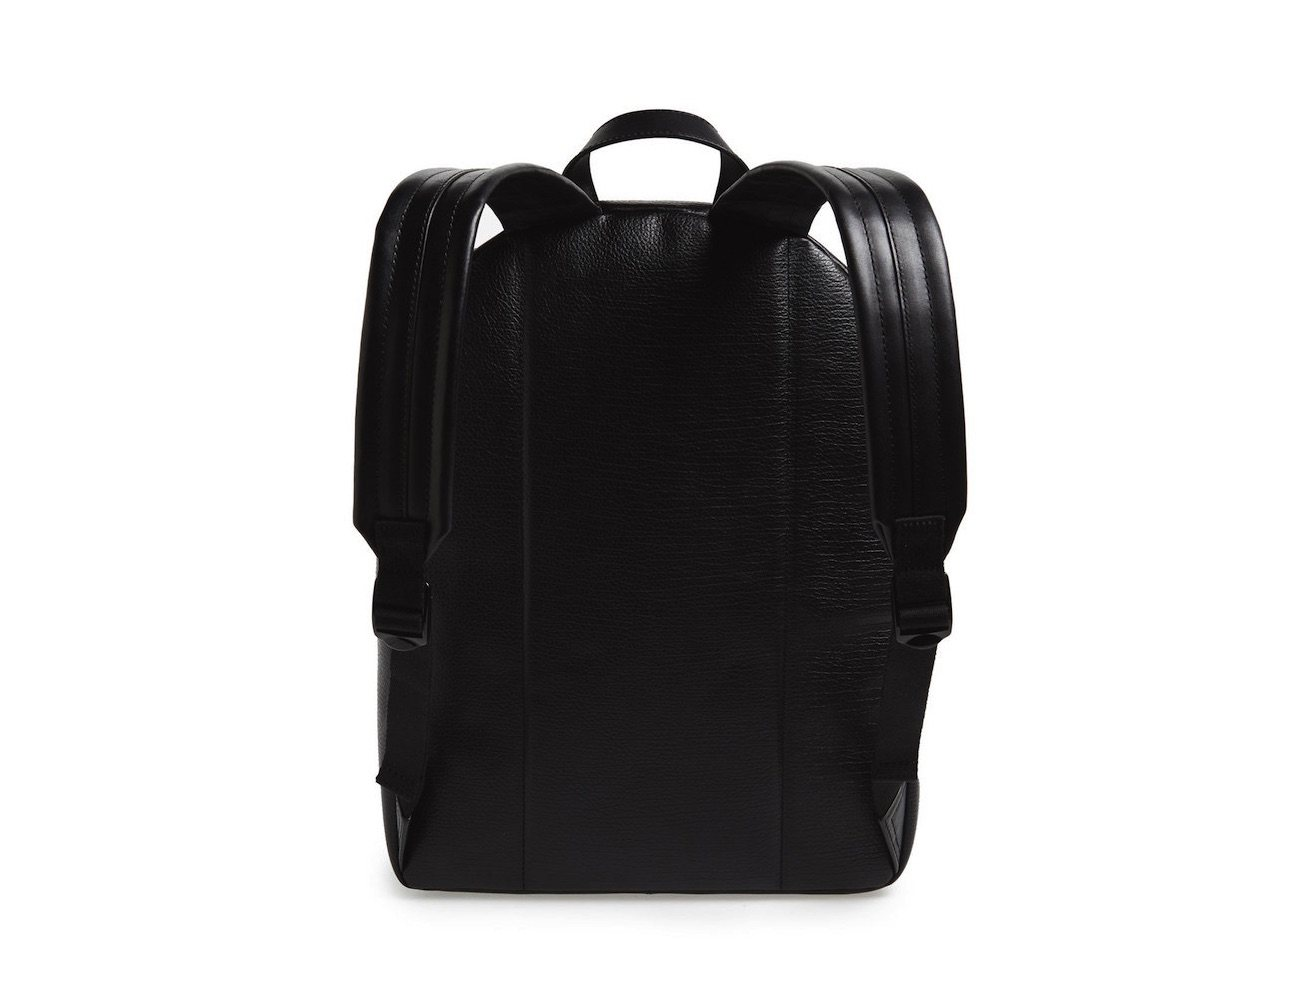 Bondi Leather Backpack by Ben Minkoff